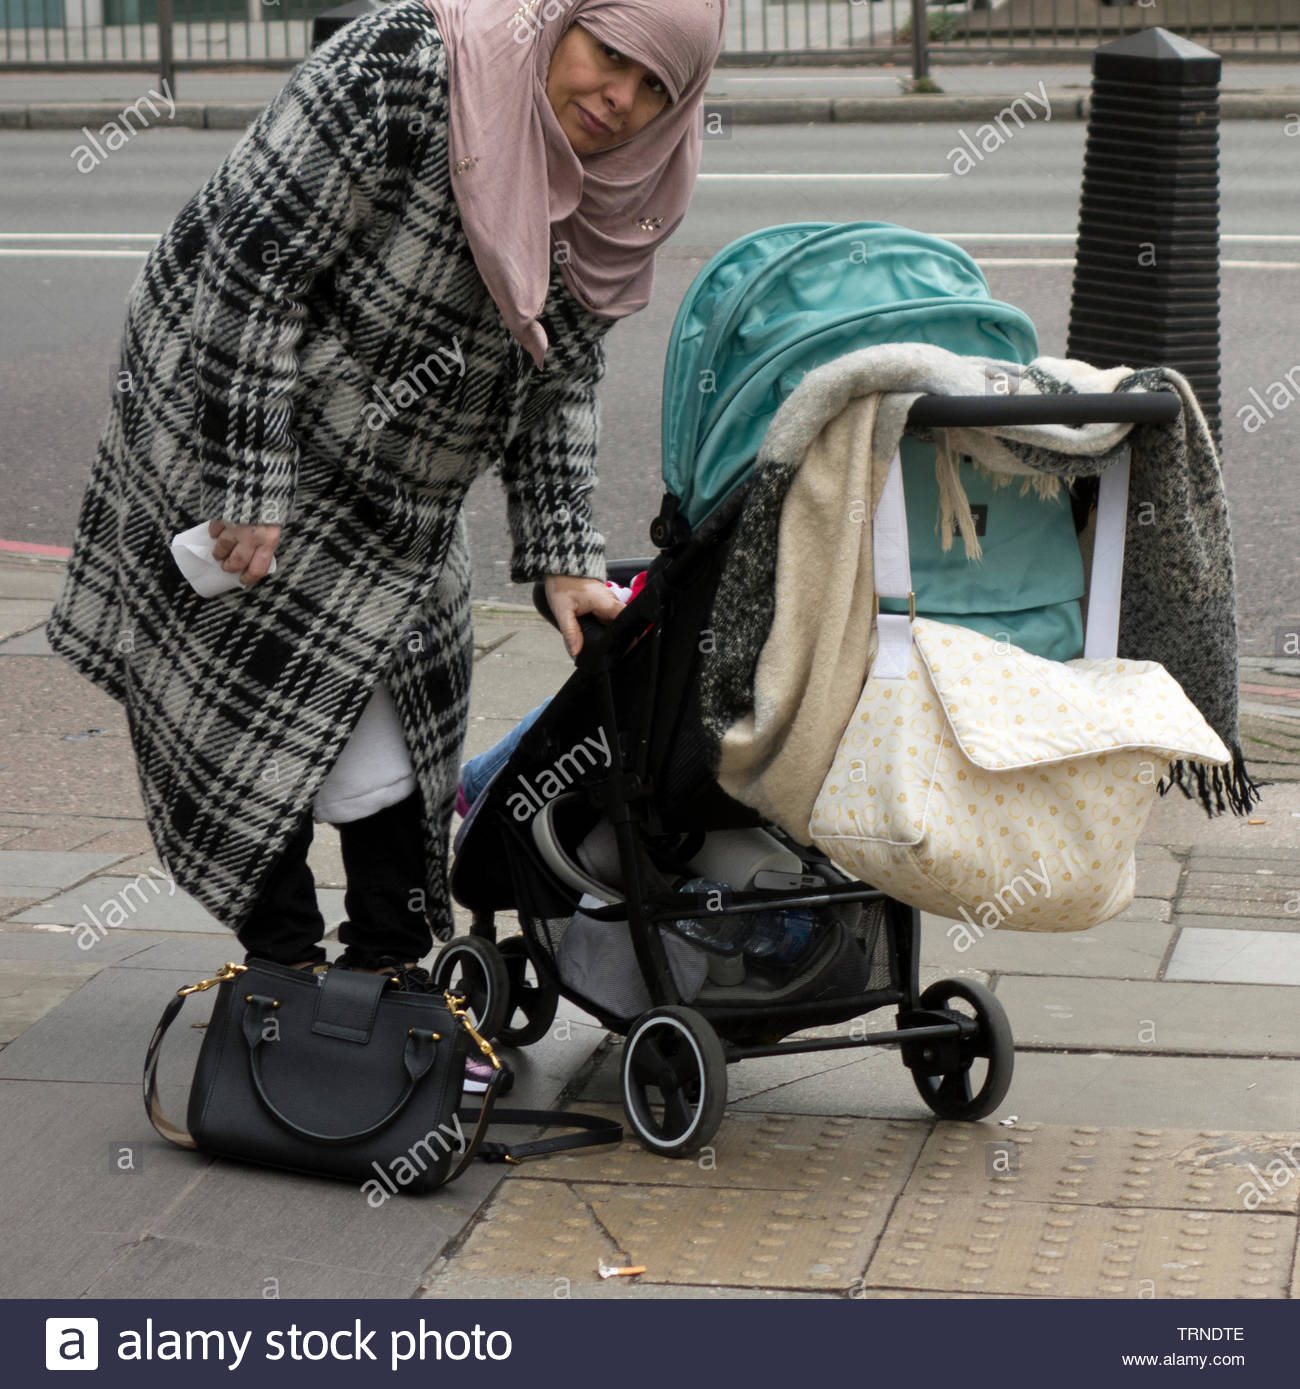 Europe, UK, London, 2018: View Of Muslim Woman With Baby In Pram Stock Photo